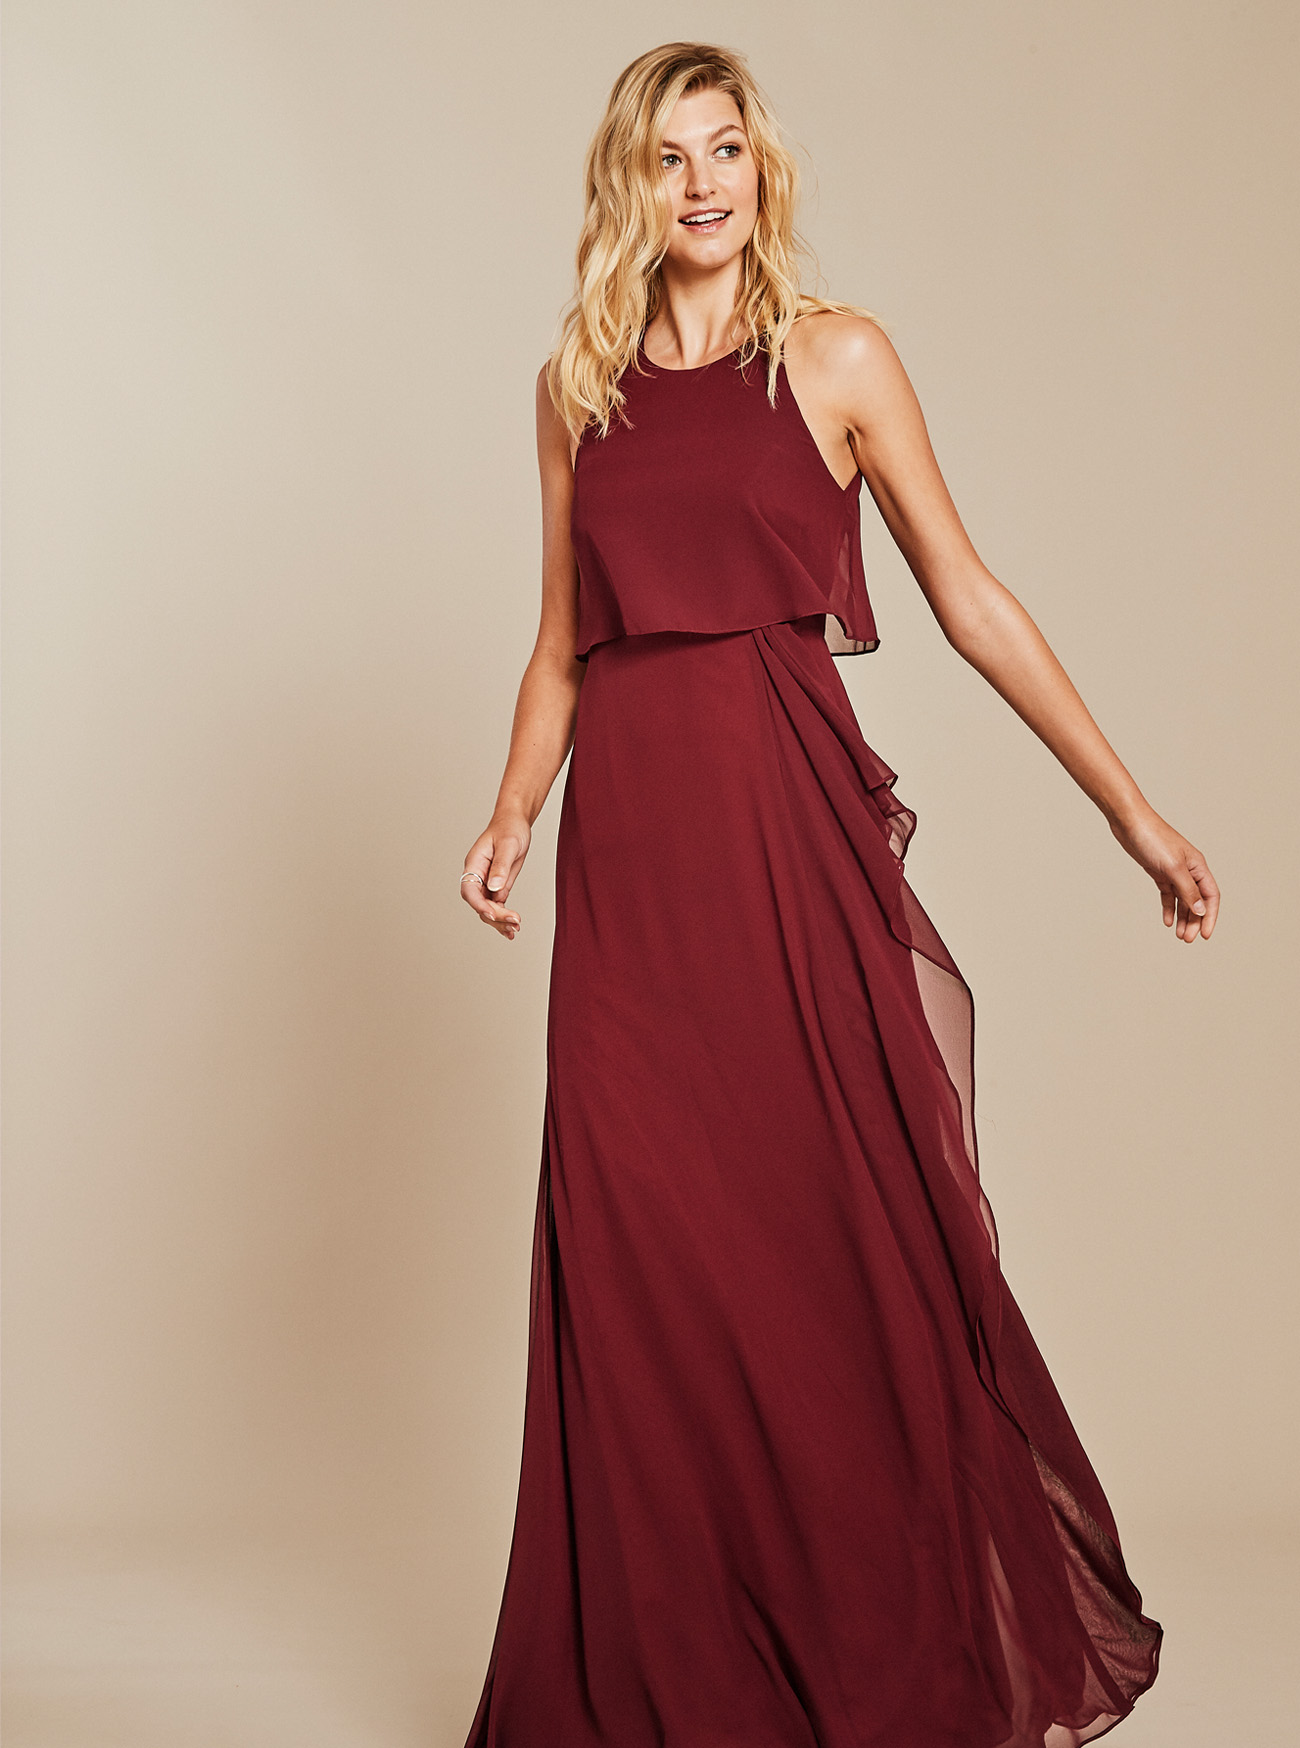 evening collective bridesmaids dresses